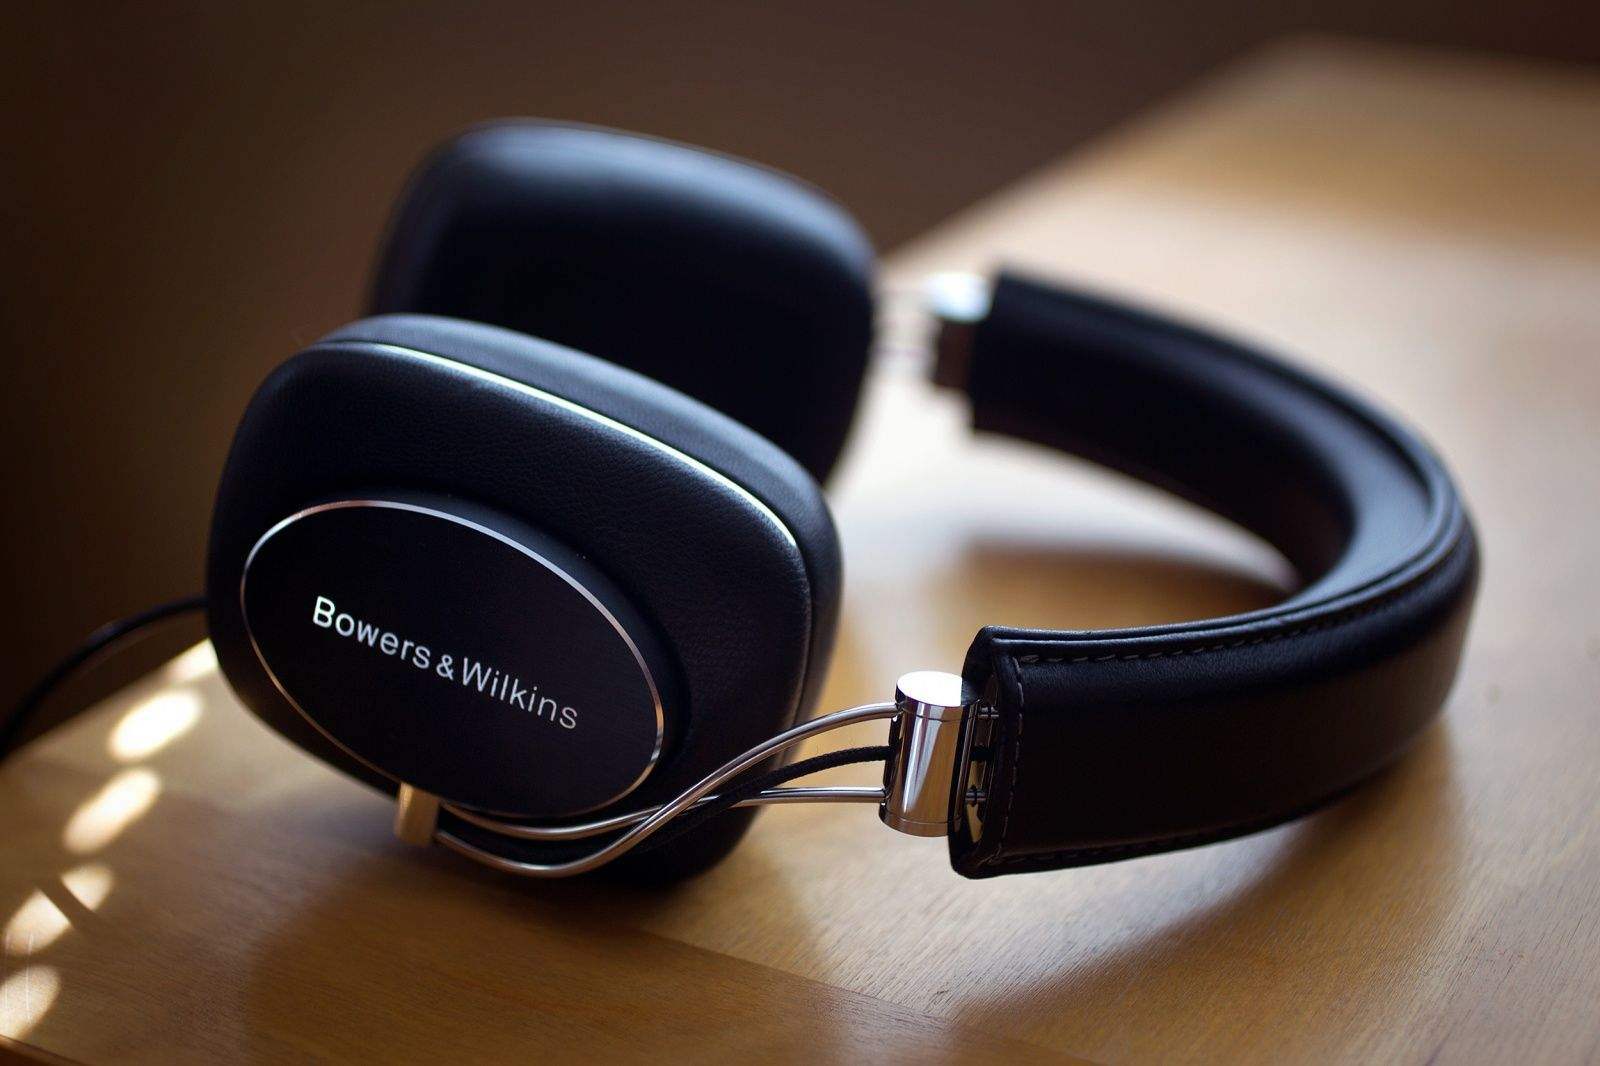 Bowers & Wilkins' P5 headphones bring a glorious audio experience.